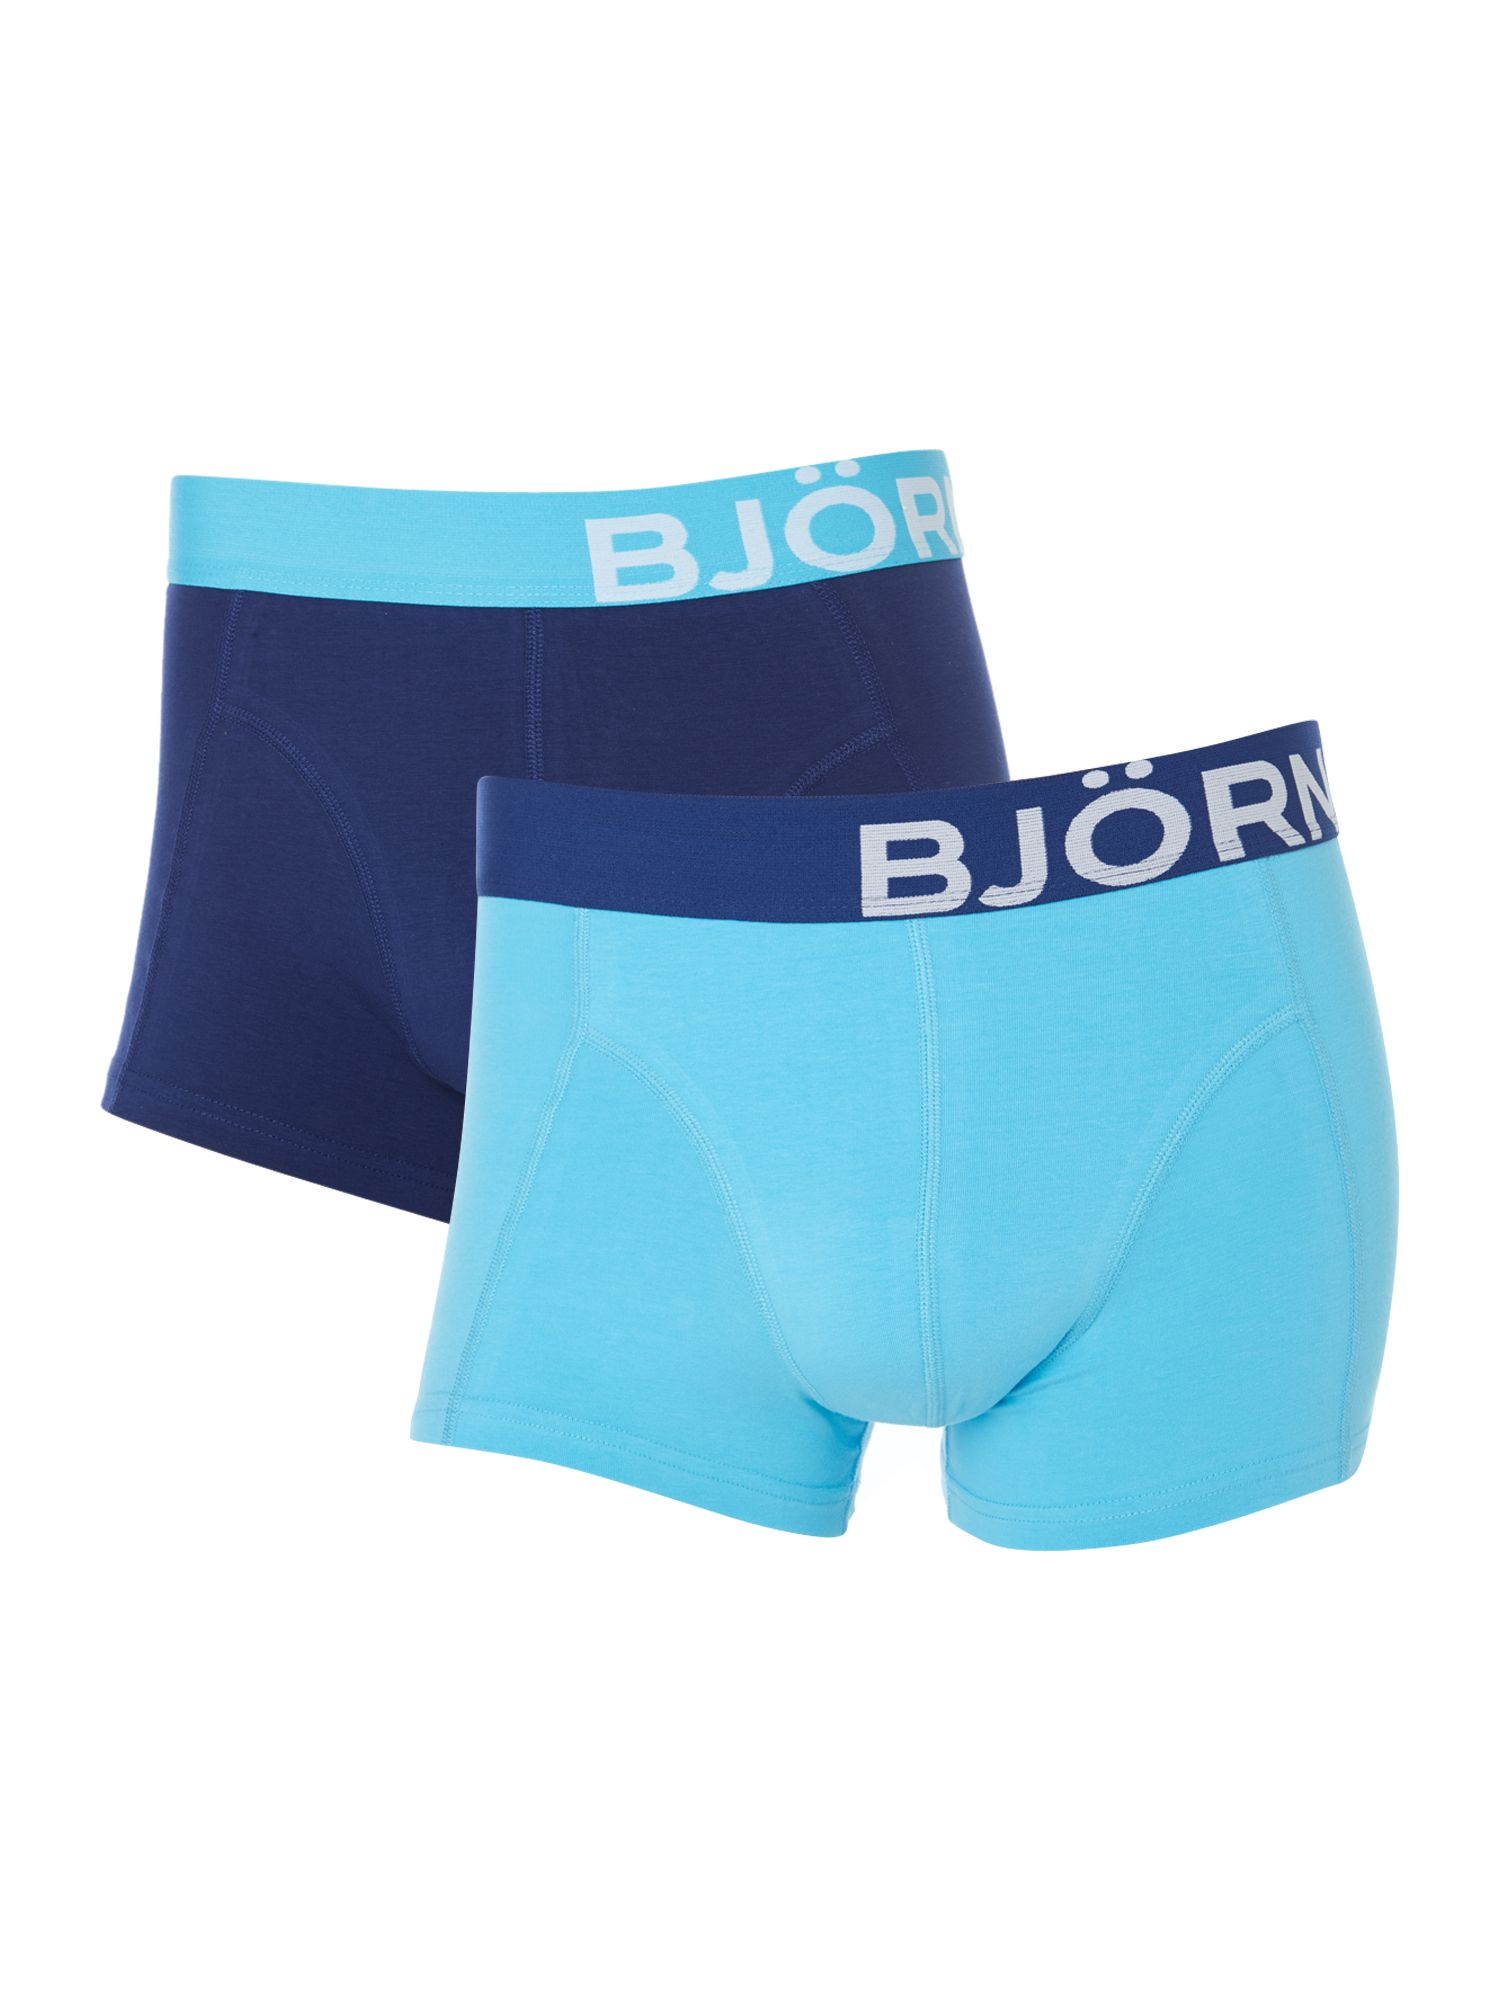 2 pack running solid underwear trunk